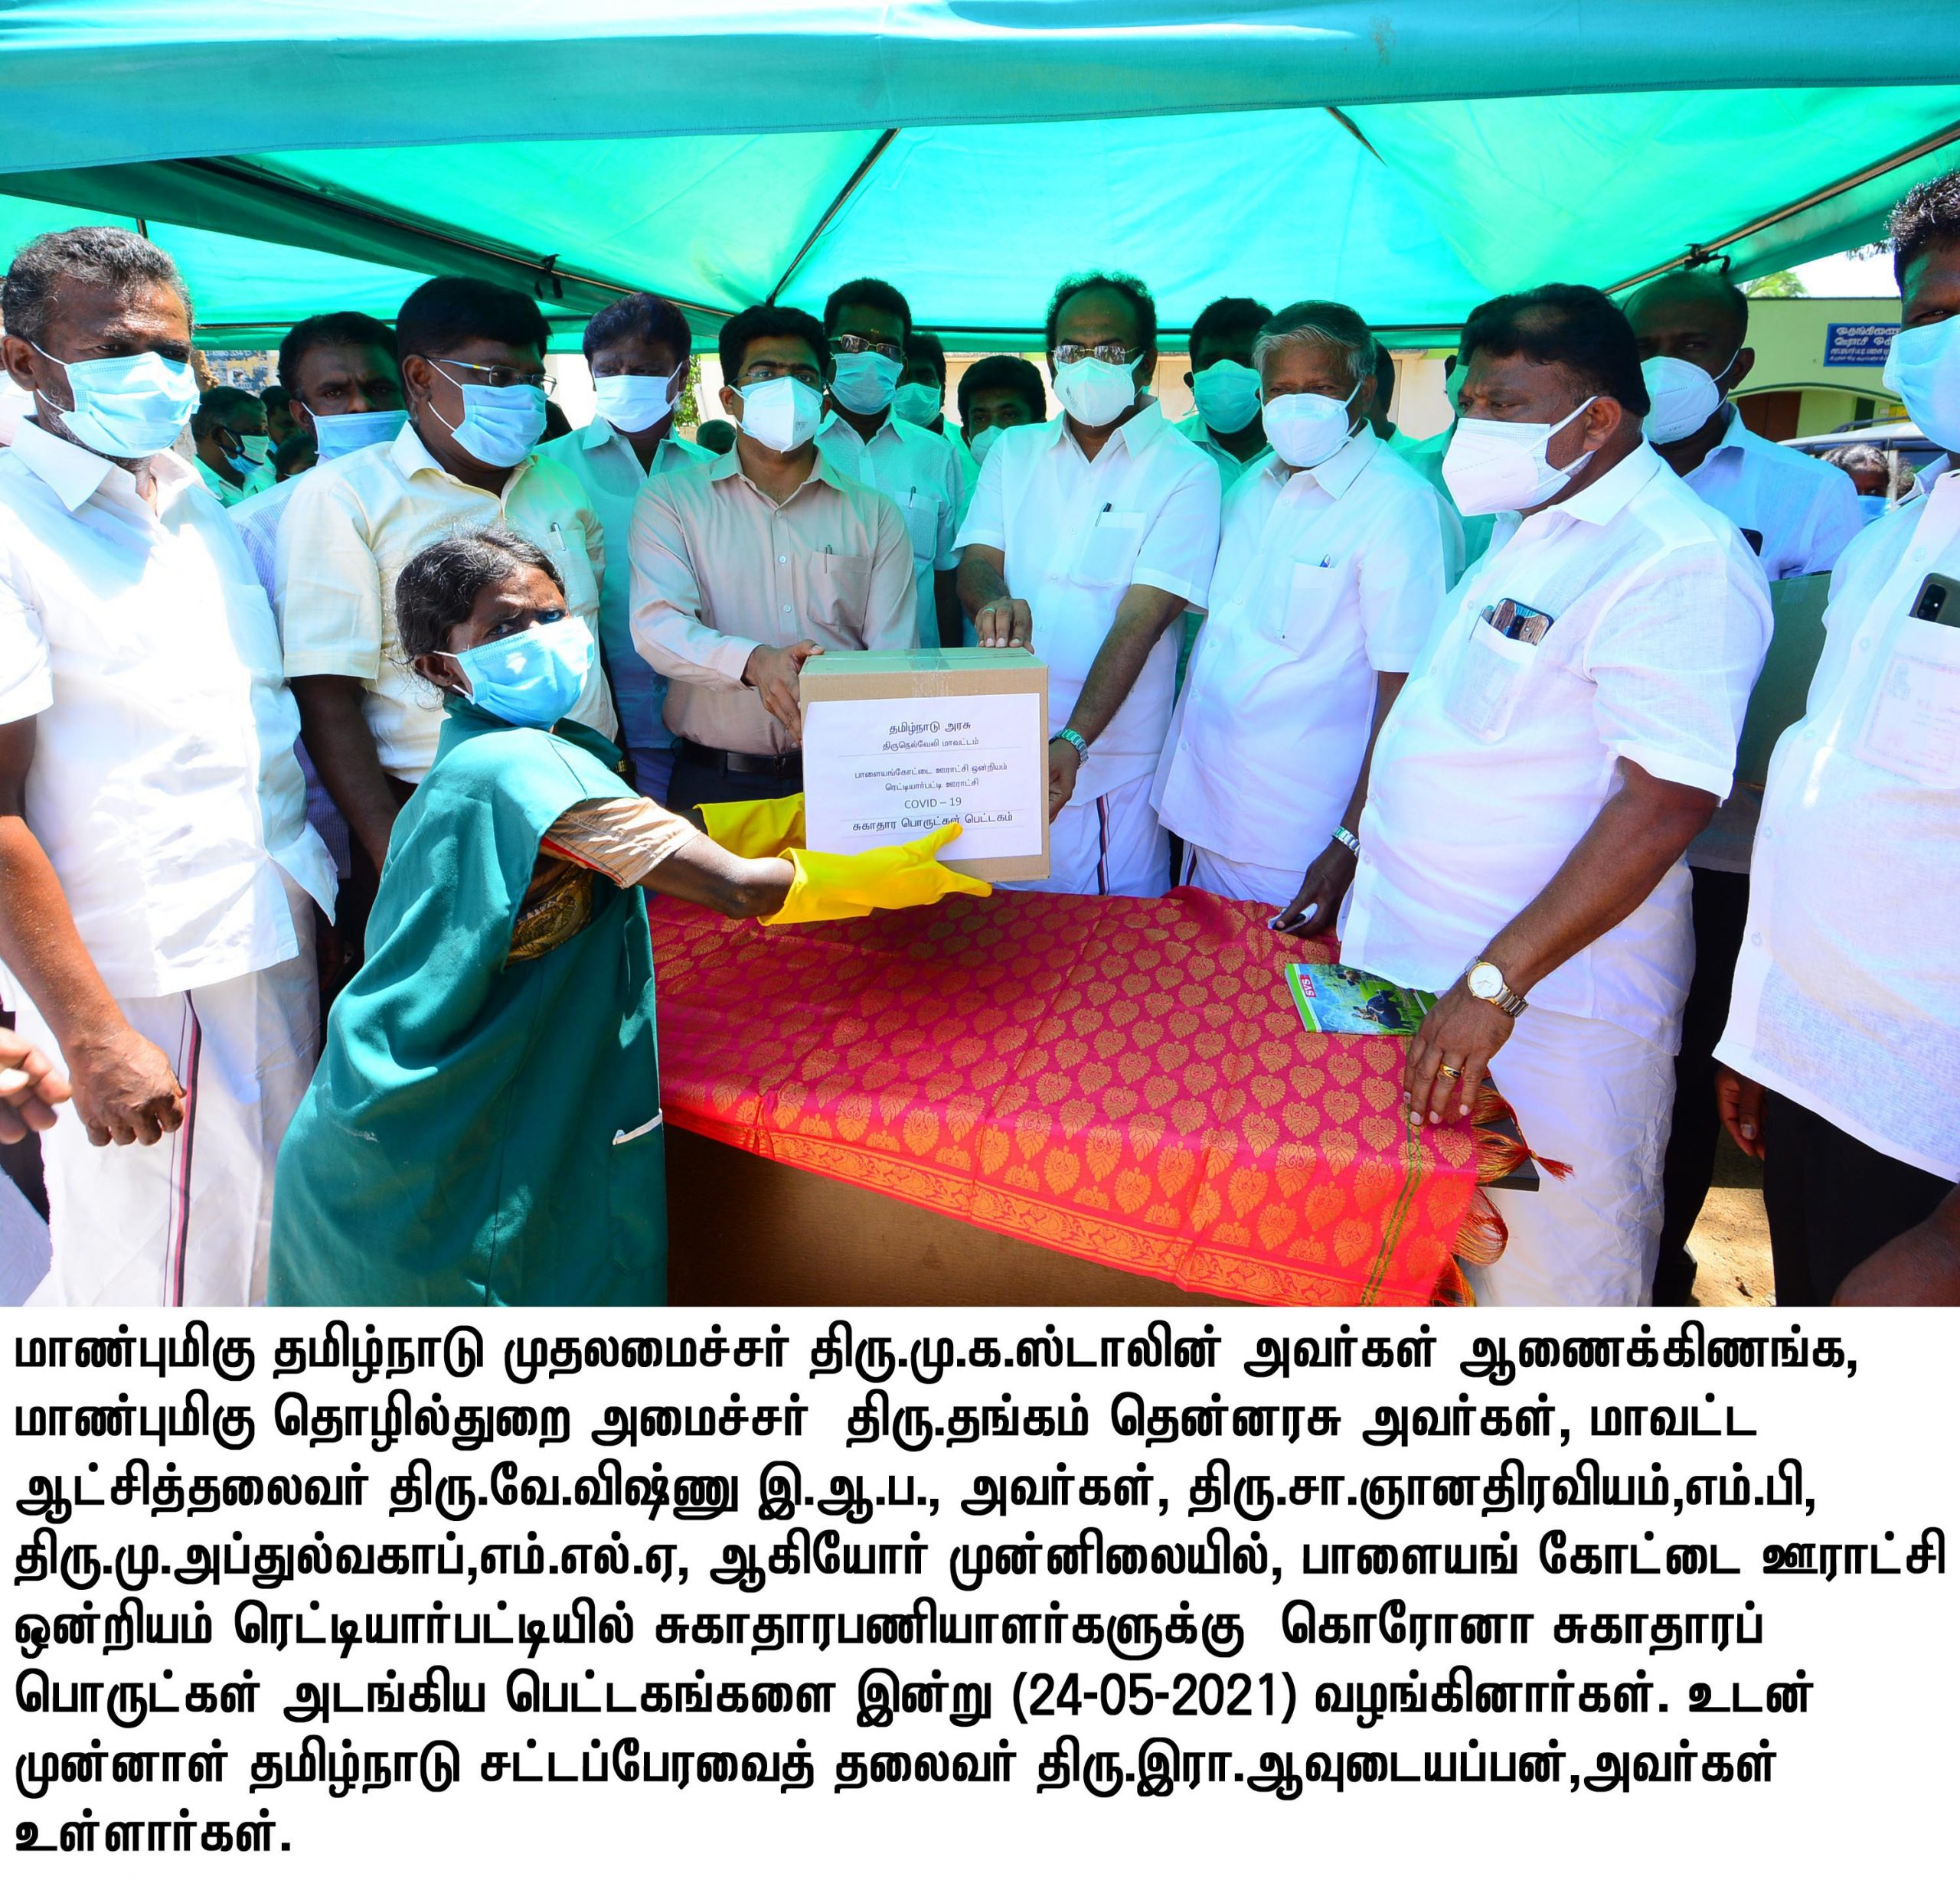 Hon'ble Minister of Industry inaugurated 535 mobile vegetable and fruit vending vehicles